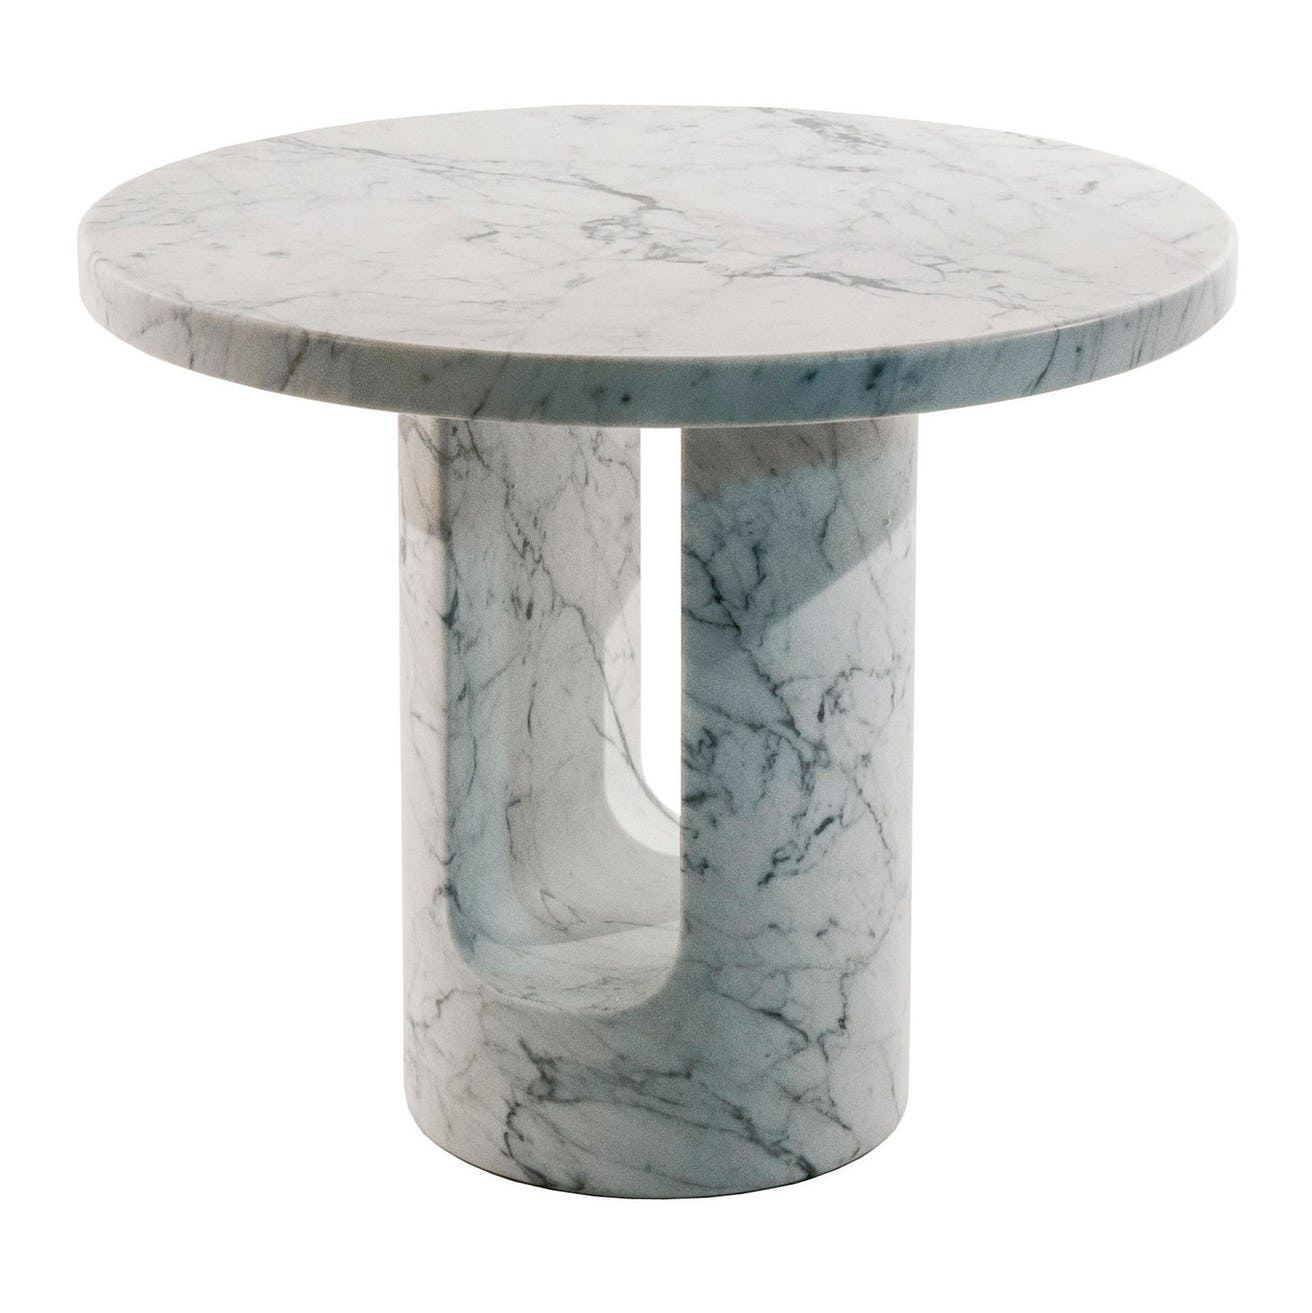 U Turn Table By Covo Furniture Now Available At Haute Living